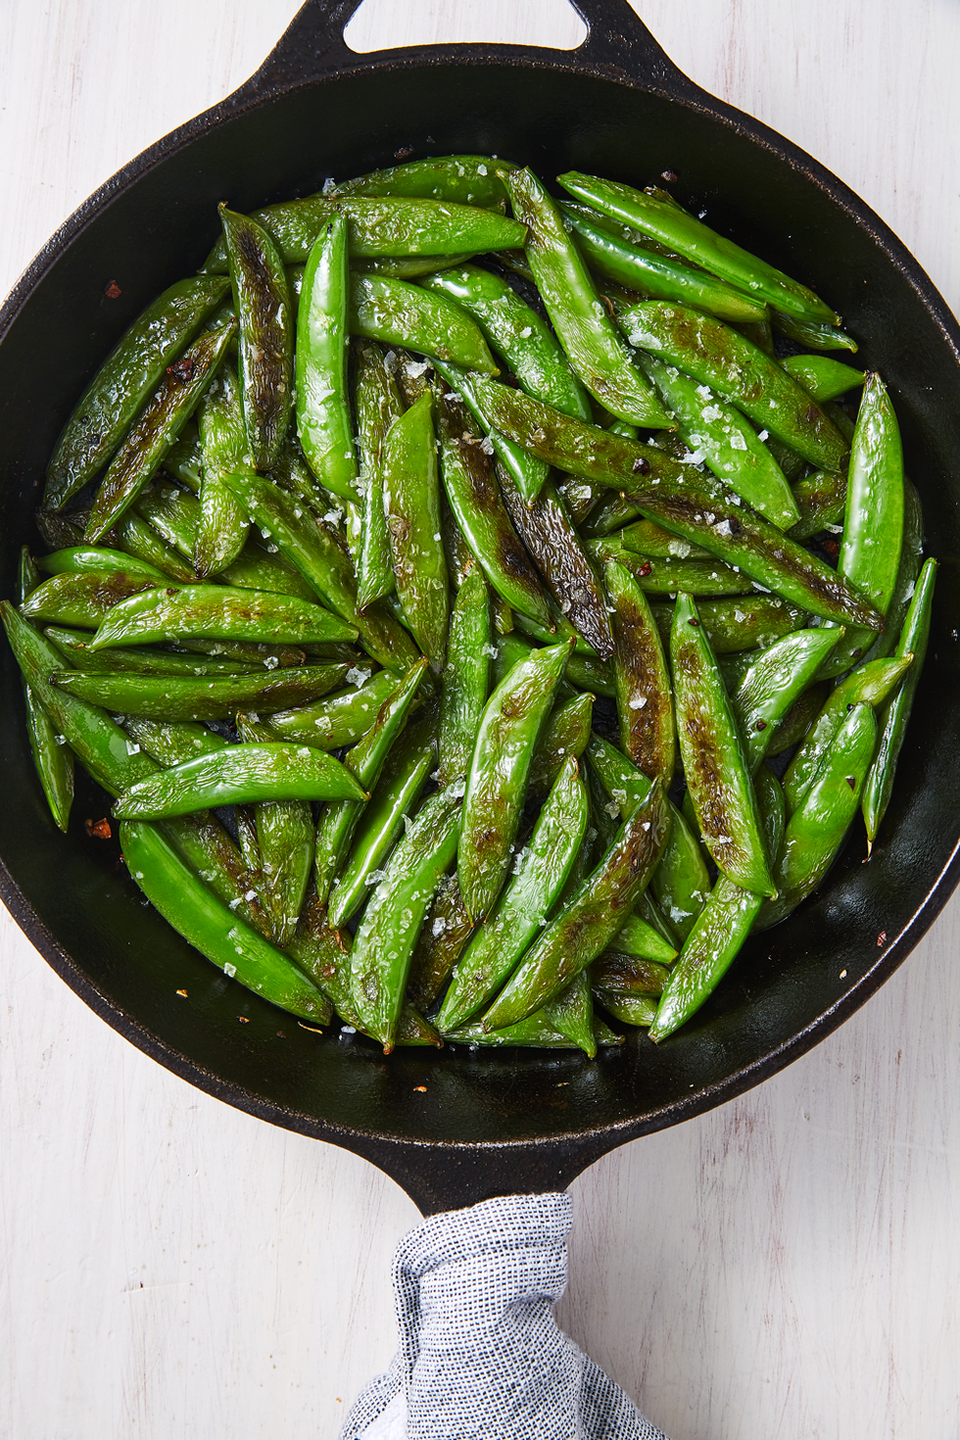 """<p>Sugar snap peas only take 5 minutes to sauté into crispy perfection.</p><p>Get the <a href=""""https://www.delish.com/uk/cooking/recipes/a33363698/sugar-snap-peas-recipe/"""" rel=""""nofollow noopener"""" target=""""_blank"""" data-ylk=""""slk:Sugar Snap Peas"""" class=""""link rapid-noclick-resp"""">Sugar Snap Peas</a> recipe.</p>"""